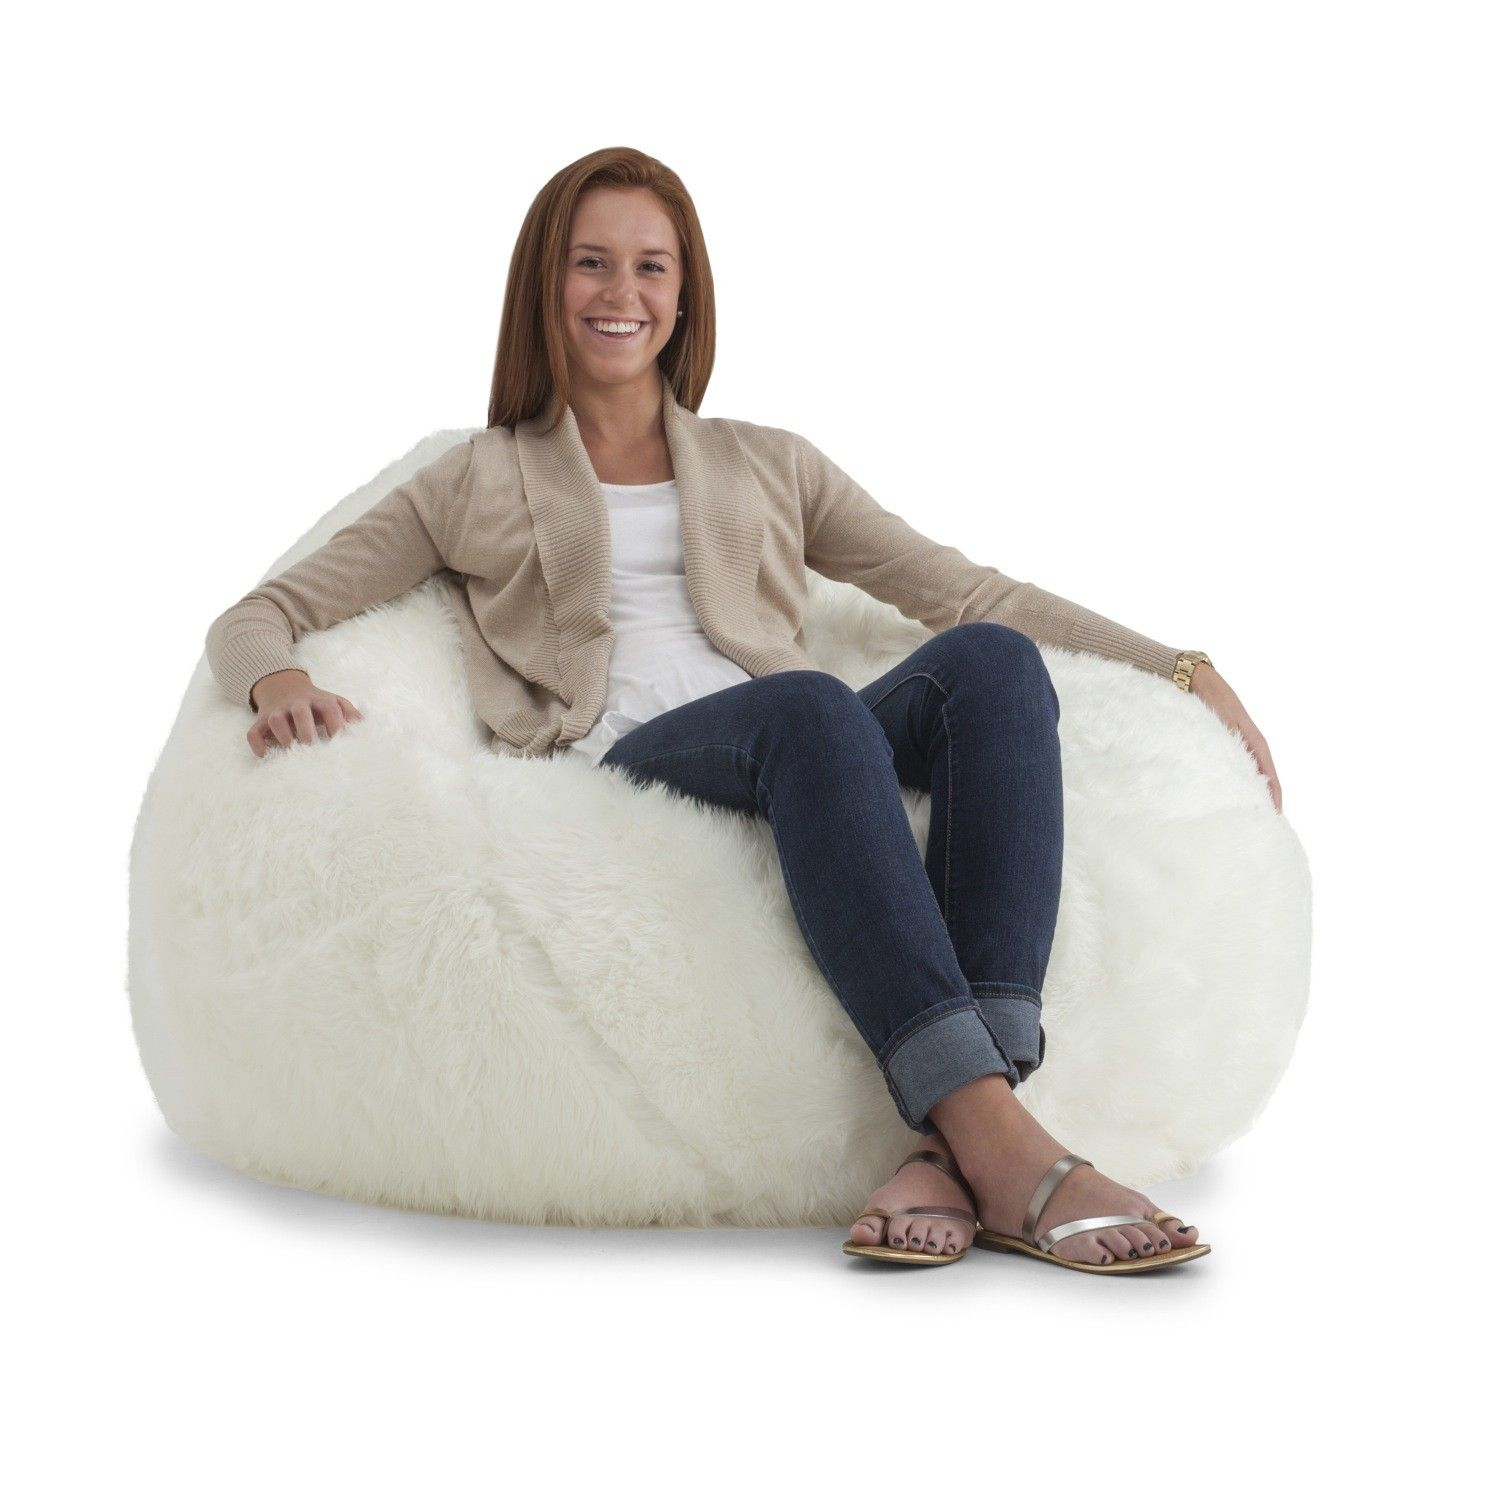 Pin by Allison NeCamp on For our house Bean bag, Fluffy